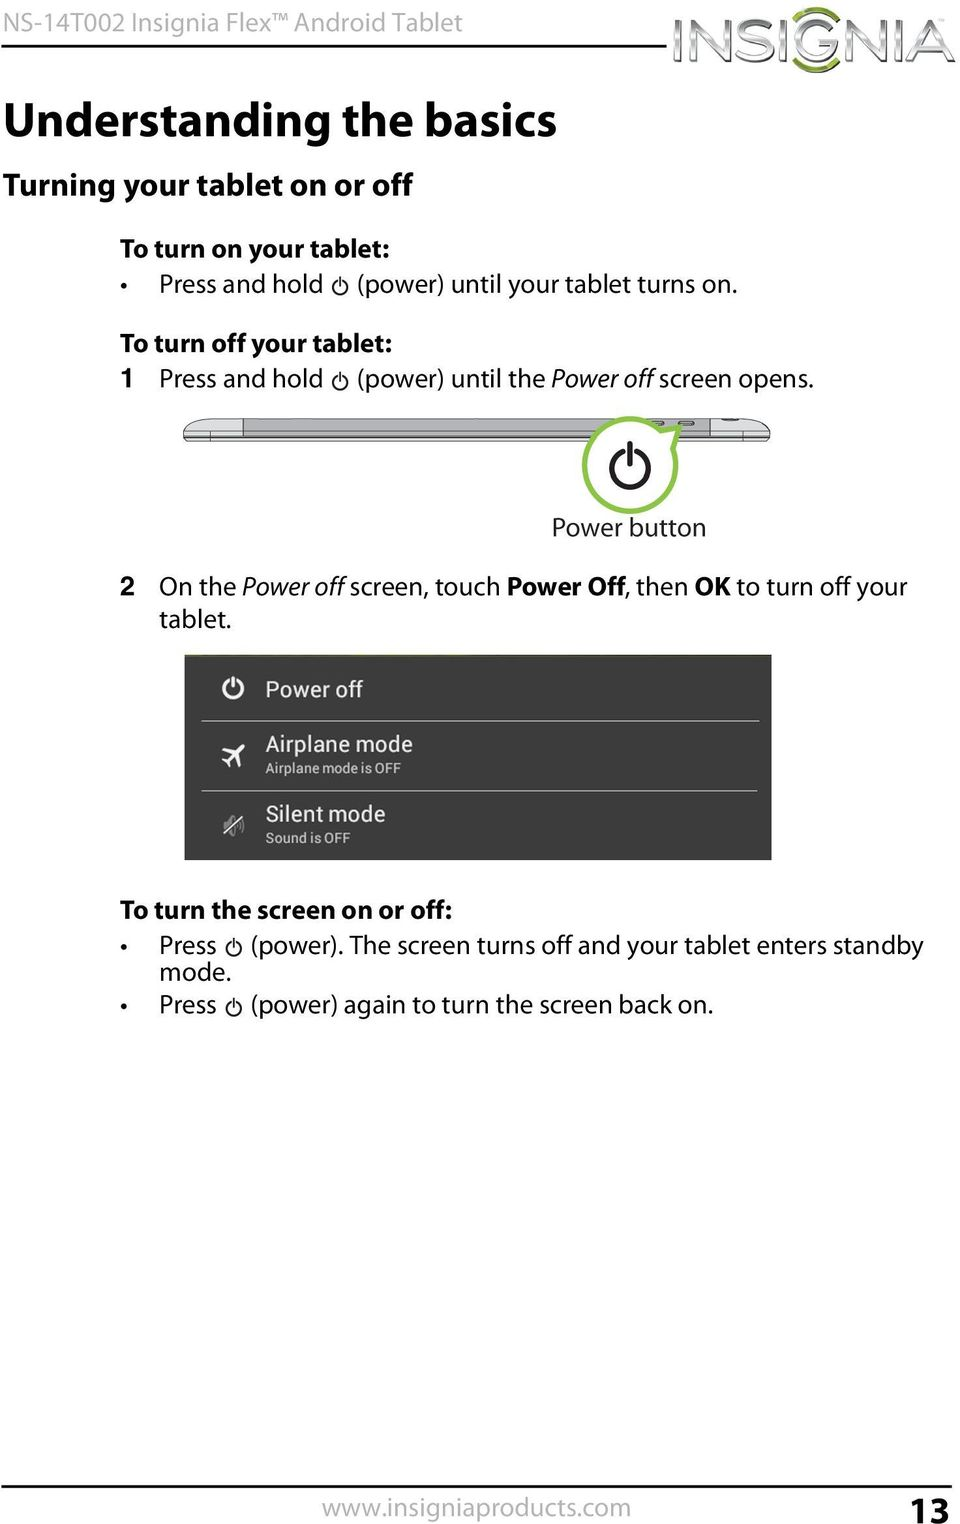 2 On the Power off screen, touch Power Off, then OK to turn off your tablet.